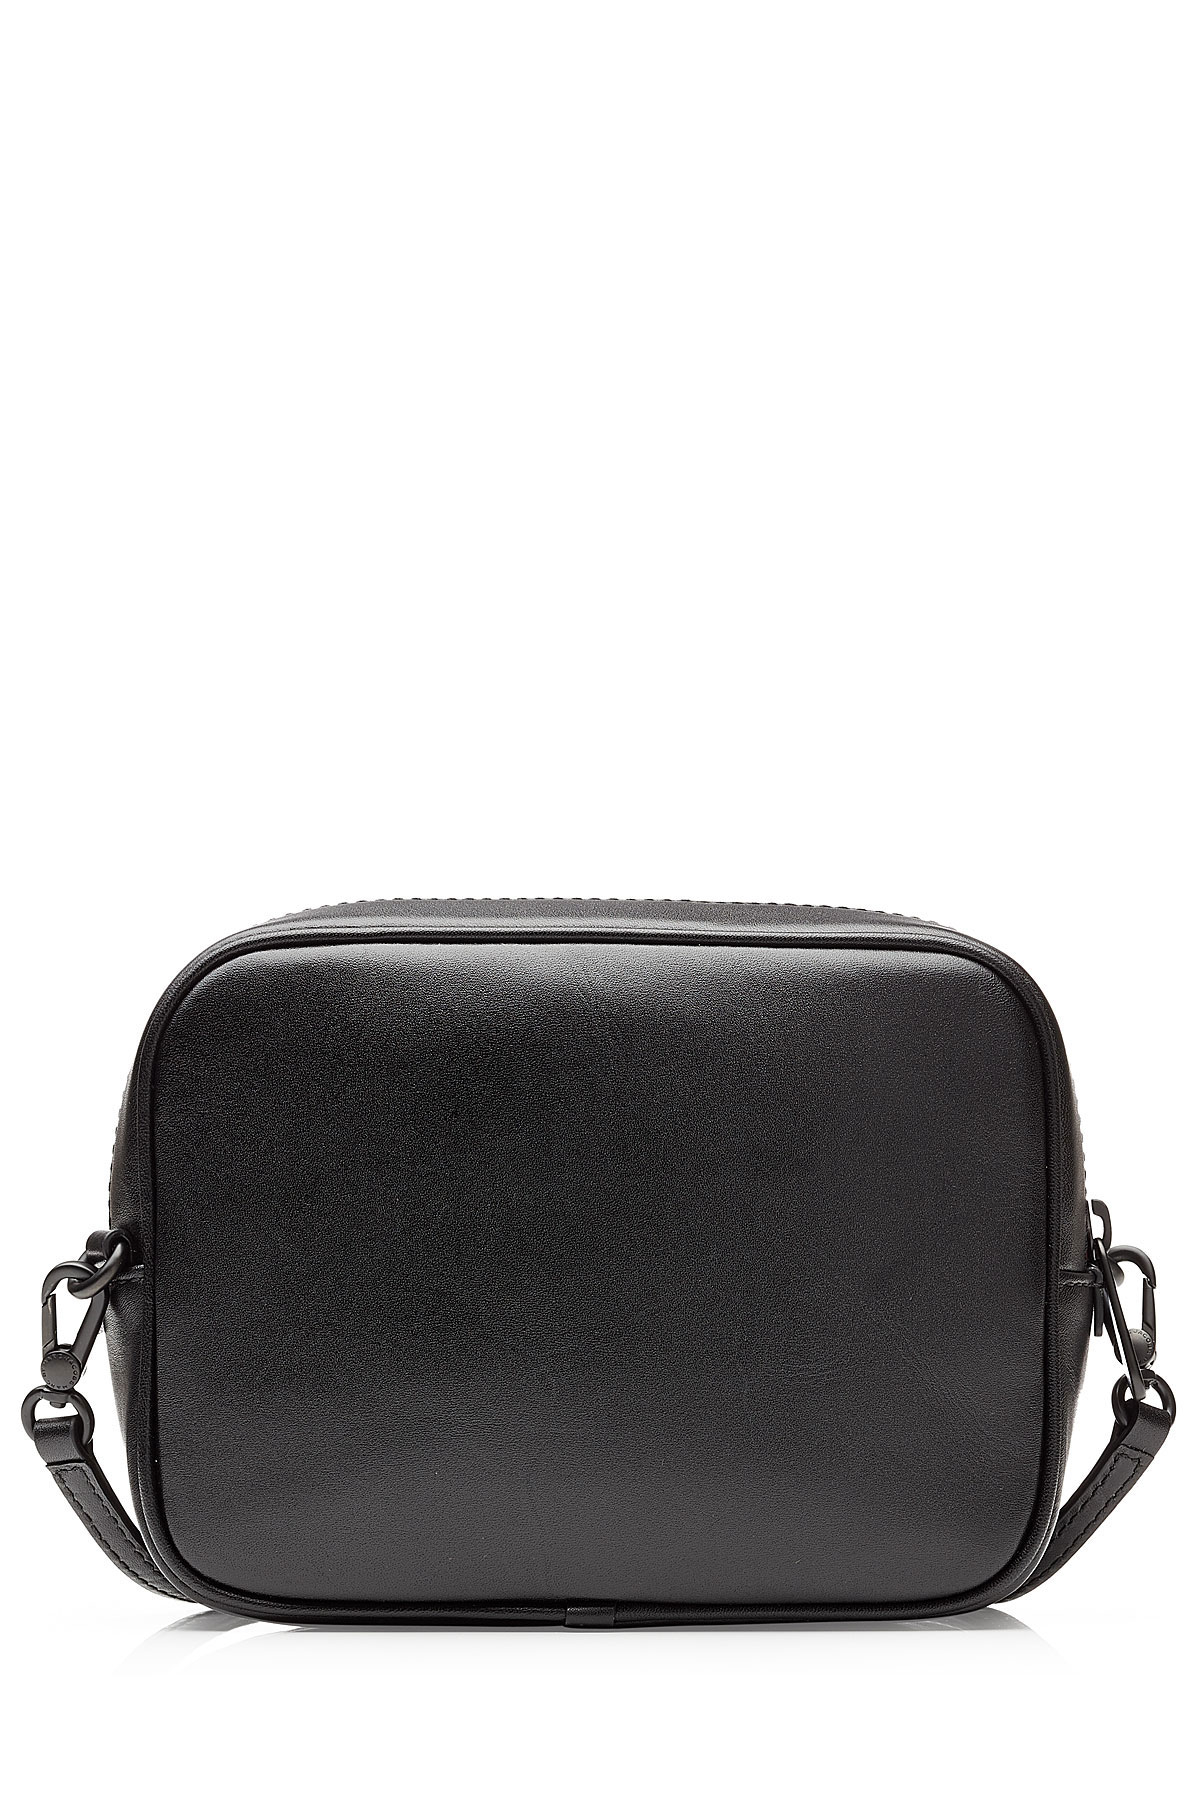 15e0c54fb8a6 Lyst - Marc By Marc Jacobs Ditsy Flower Printed Leather Camera Bag ...